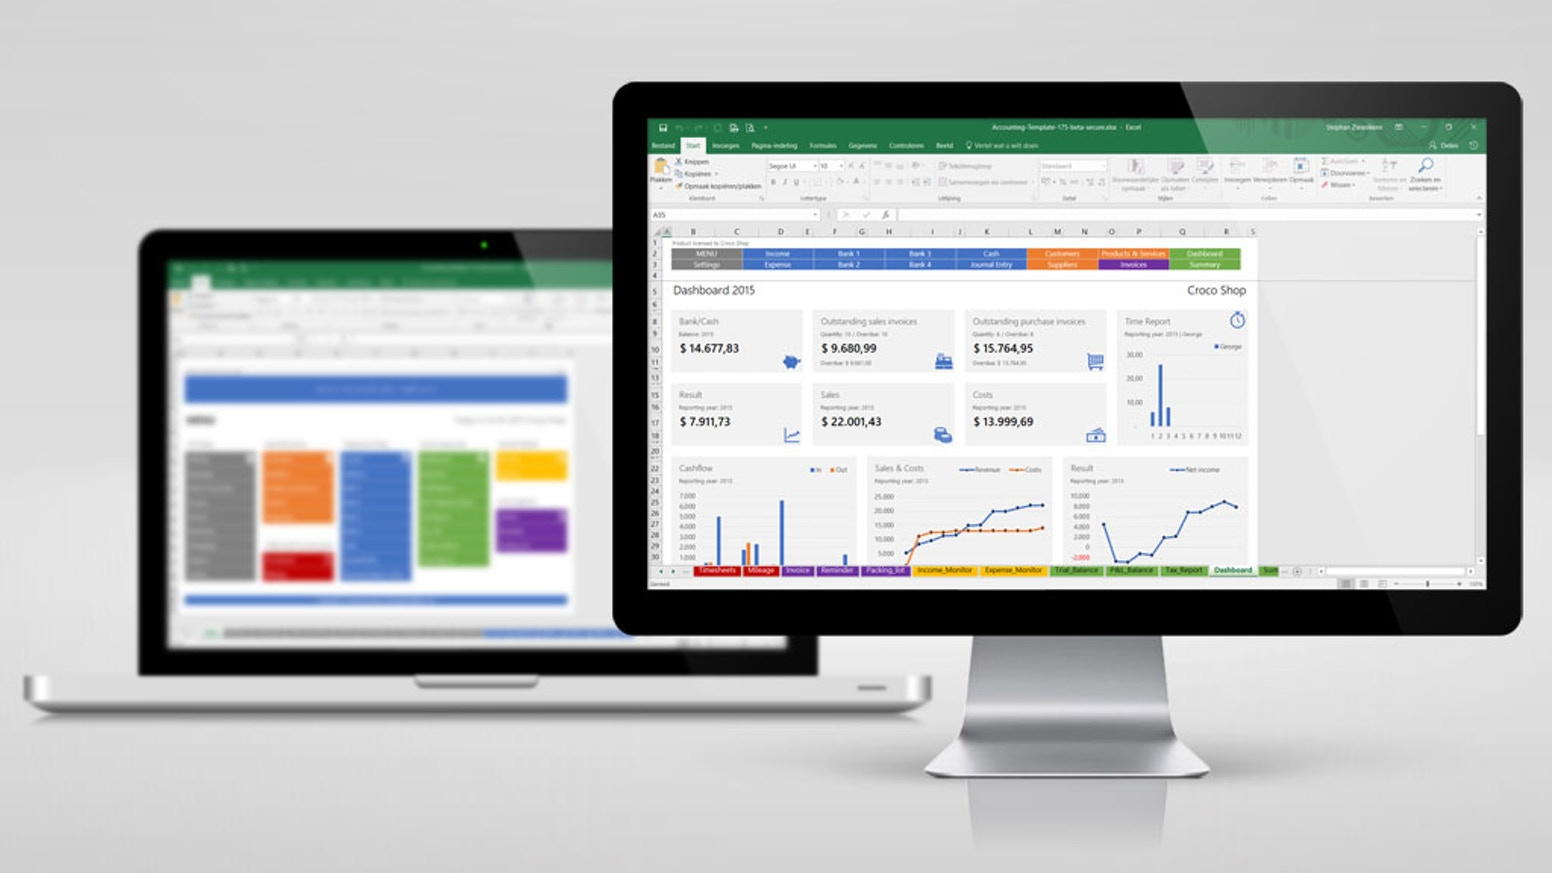 Excel accounting template by stephan zwanikken kickstarter the all in one accounting solution in excel for small business owners flashek Choice Image